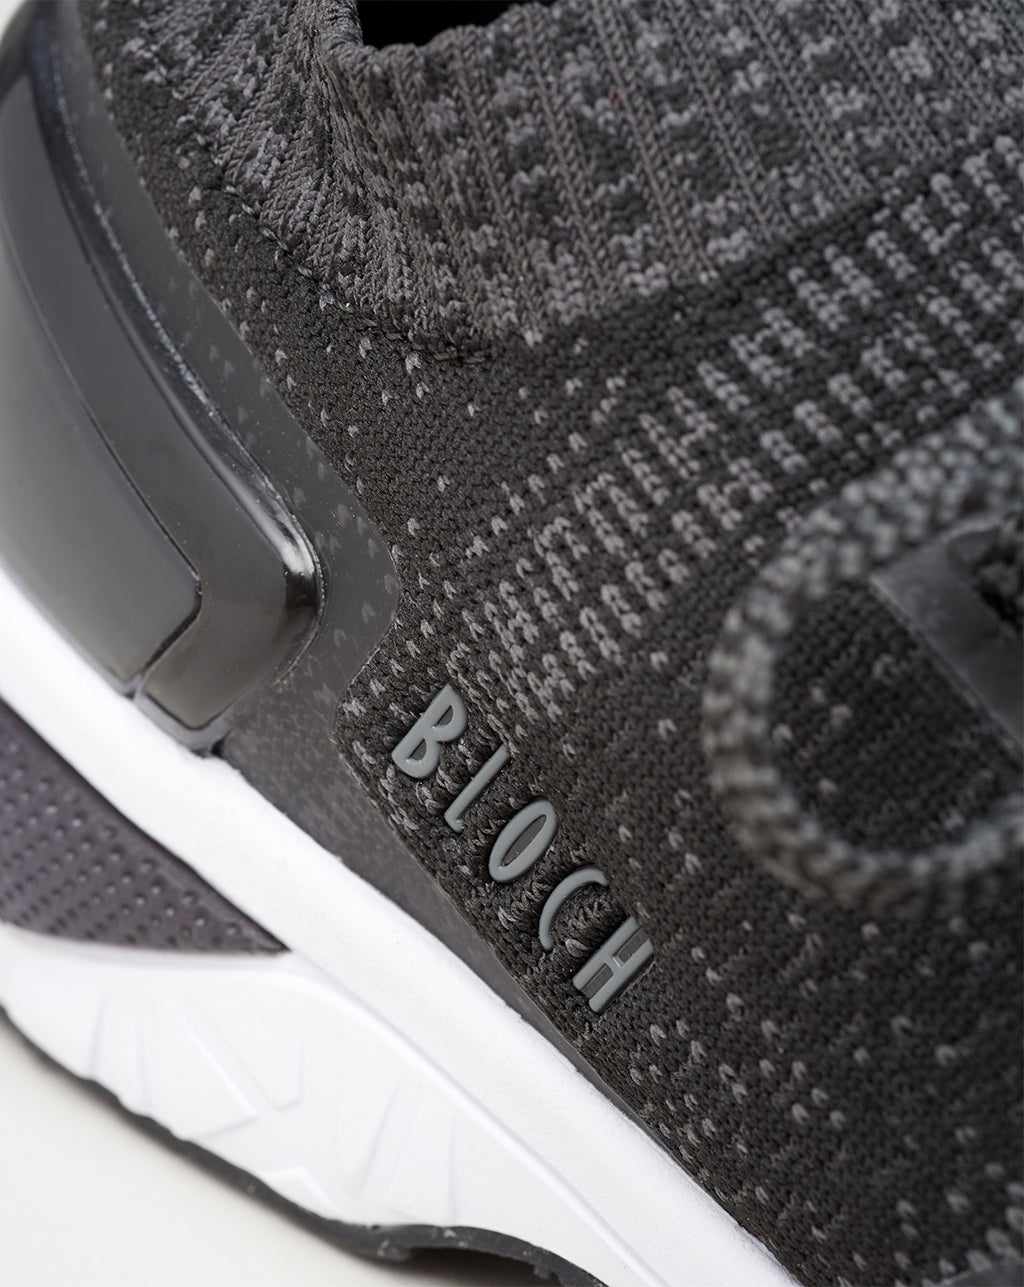 A close up of the side profile of the Alcyone in black highlighting the embossed BLOCH logo